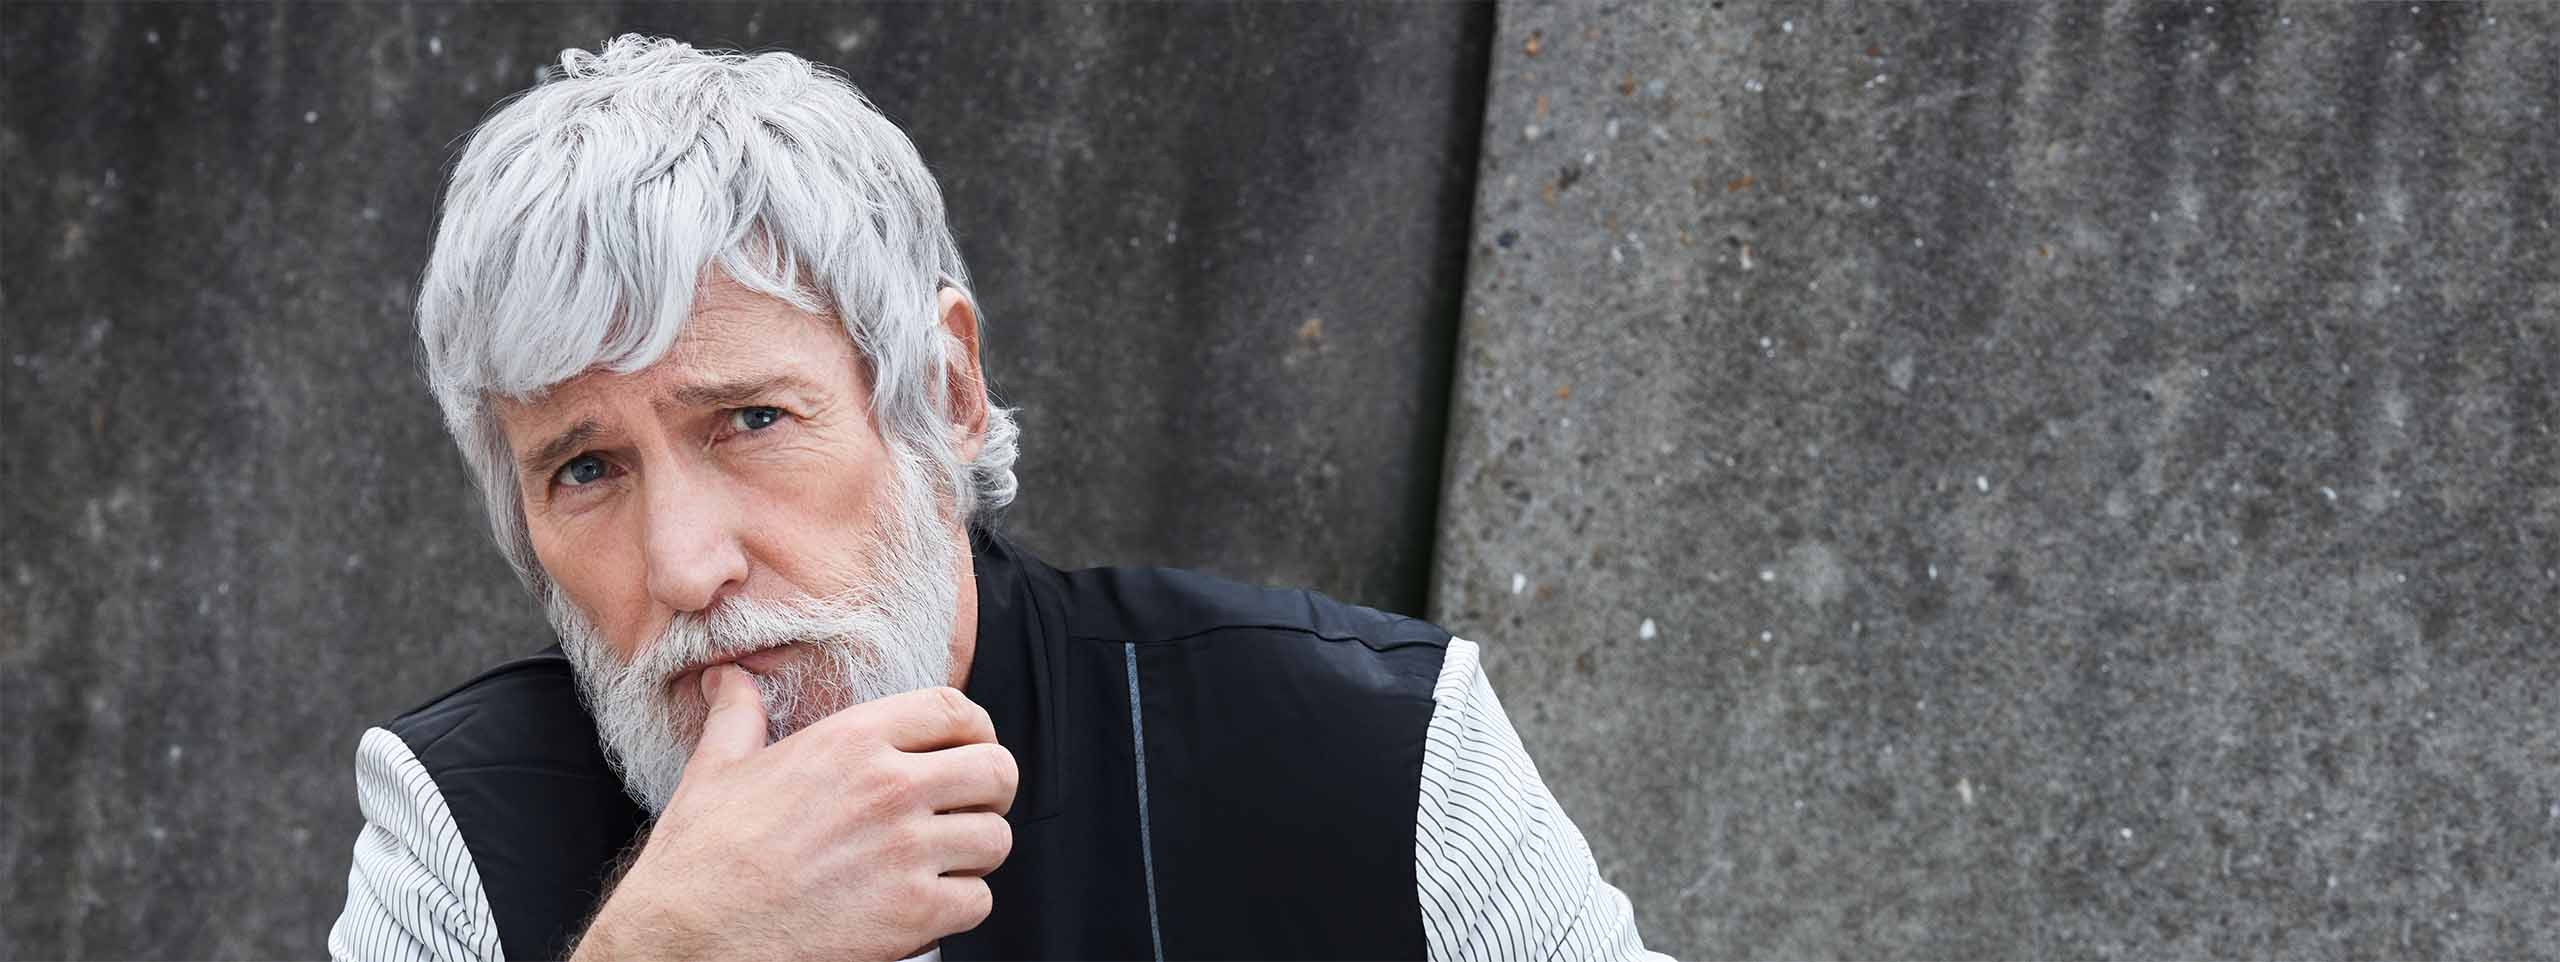 Model Aiden with grey hair and beard.